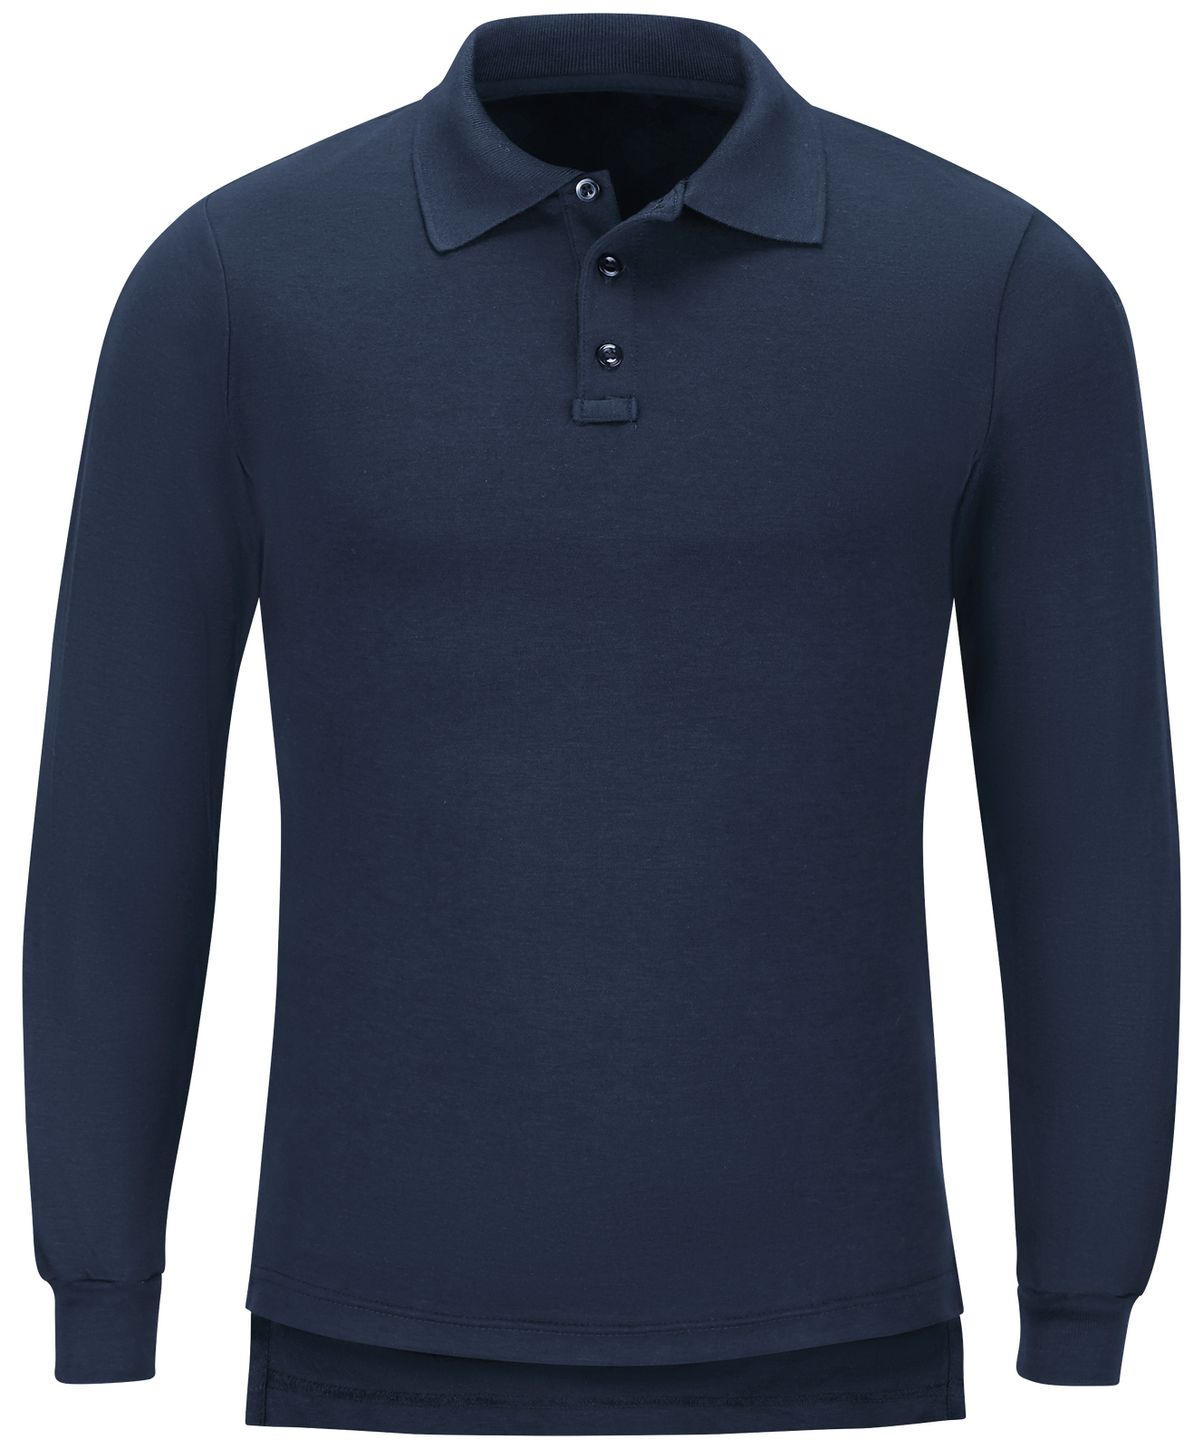 Workrite FR Polo Shirt FT20 Long Sleeve Fire Station Wear Navy Front